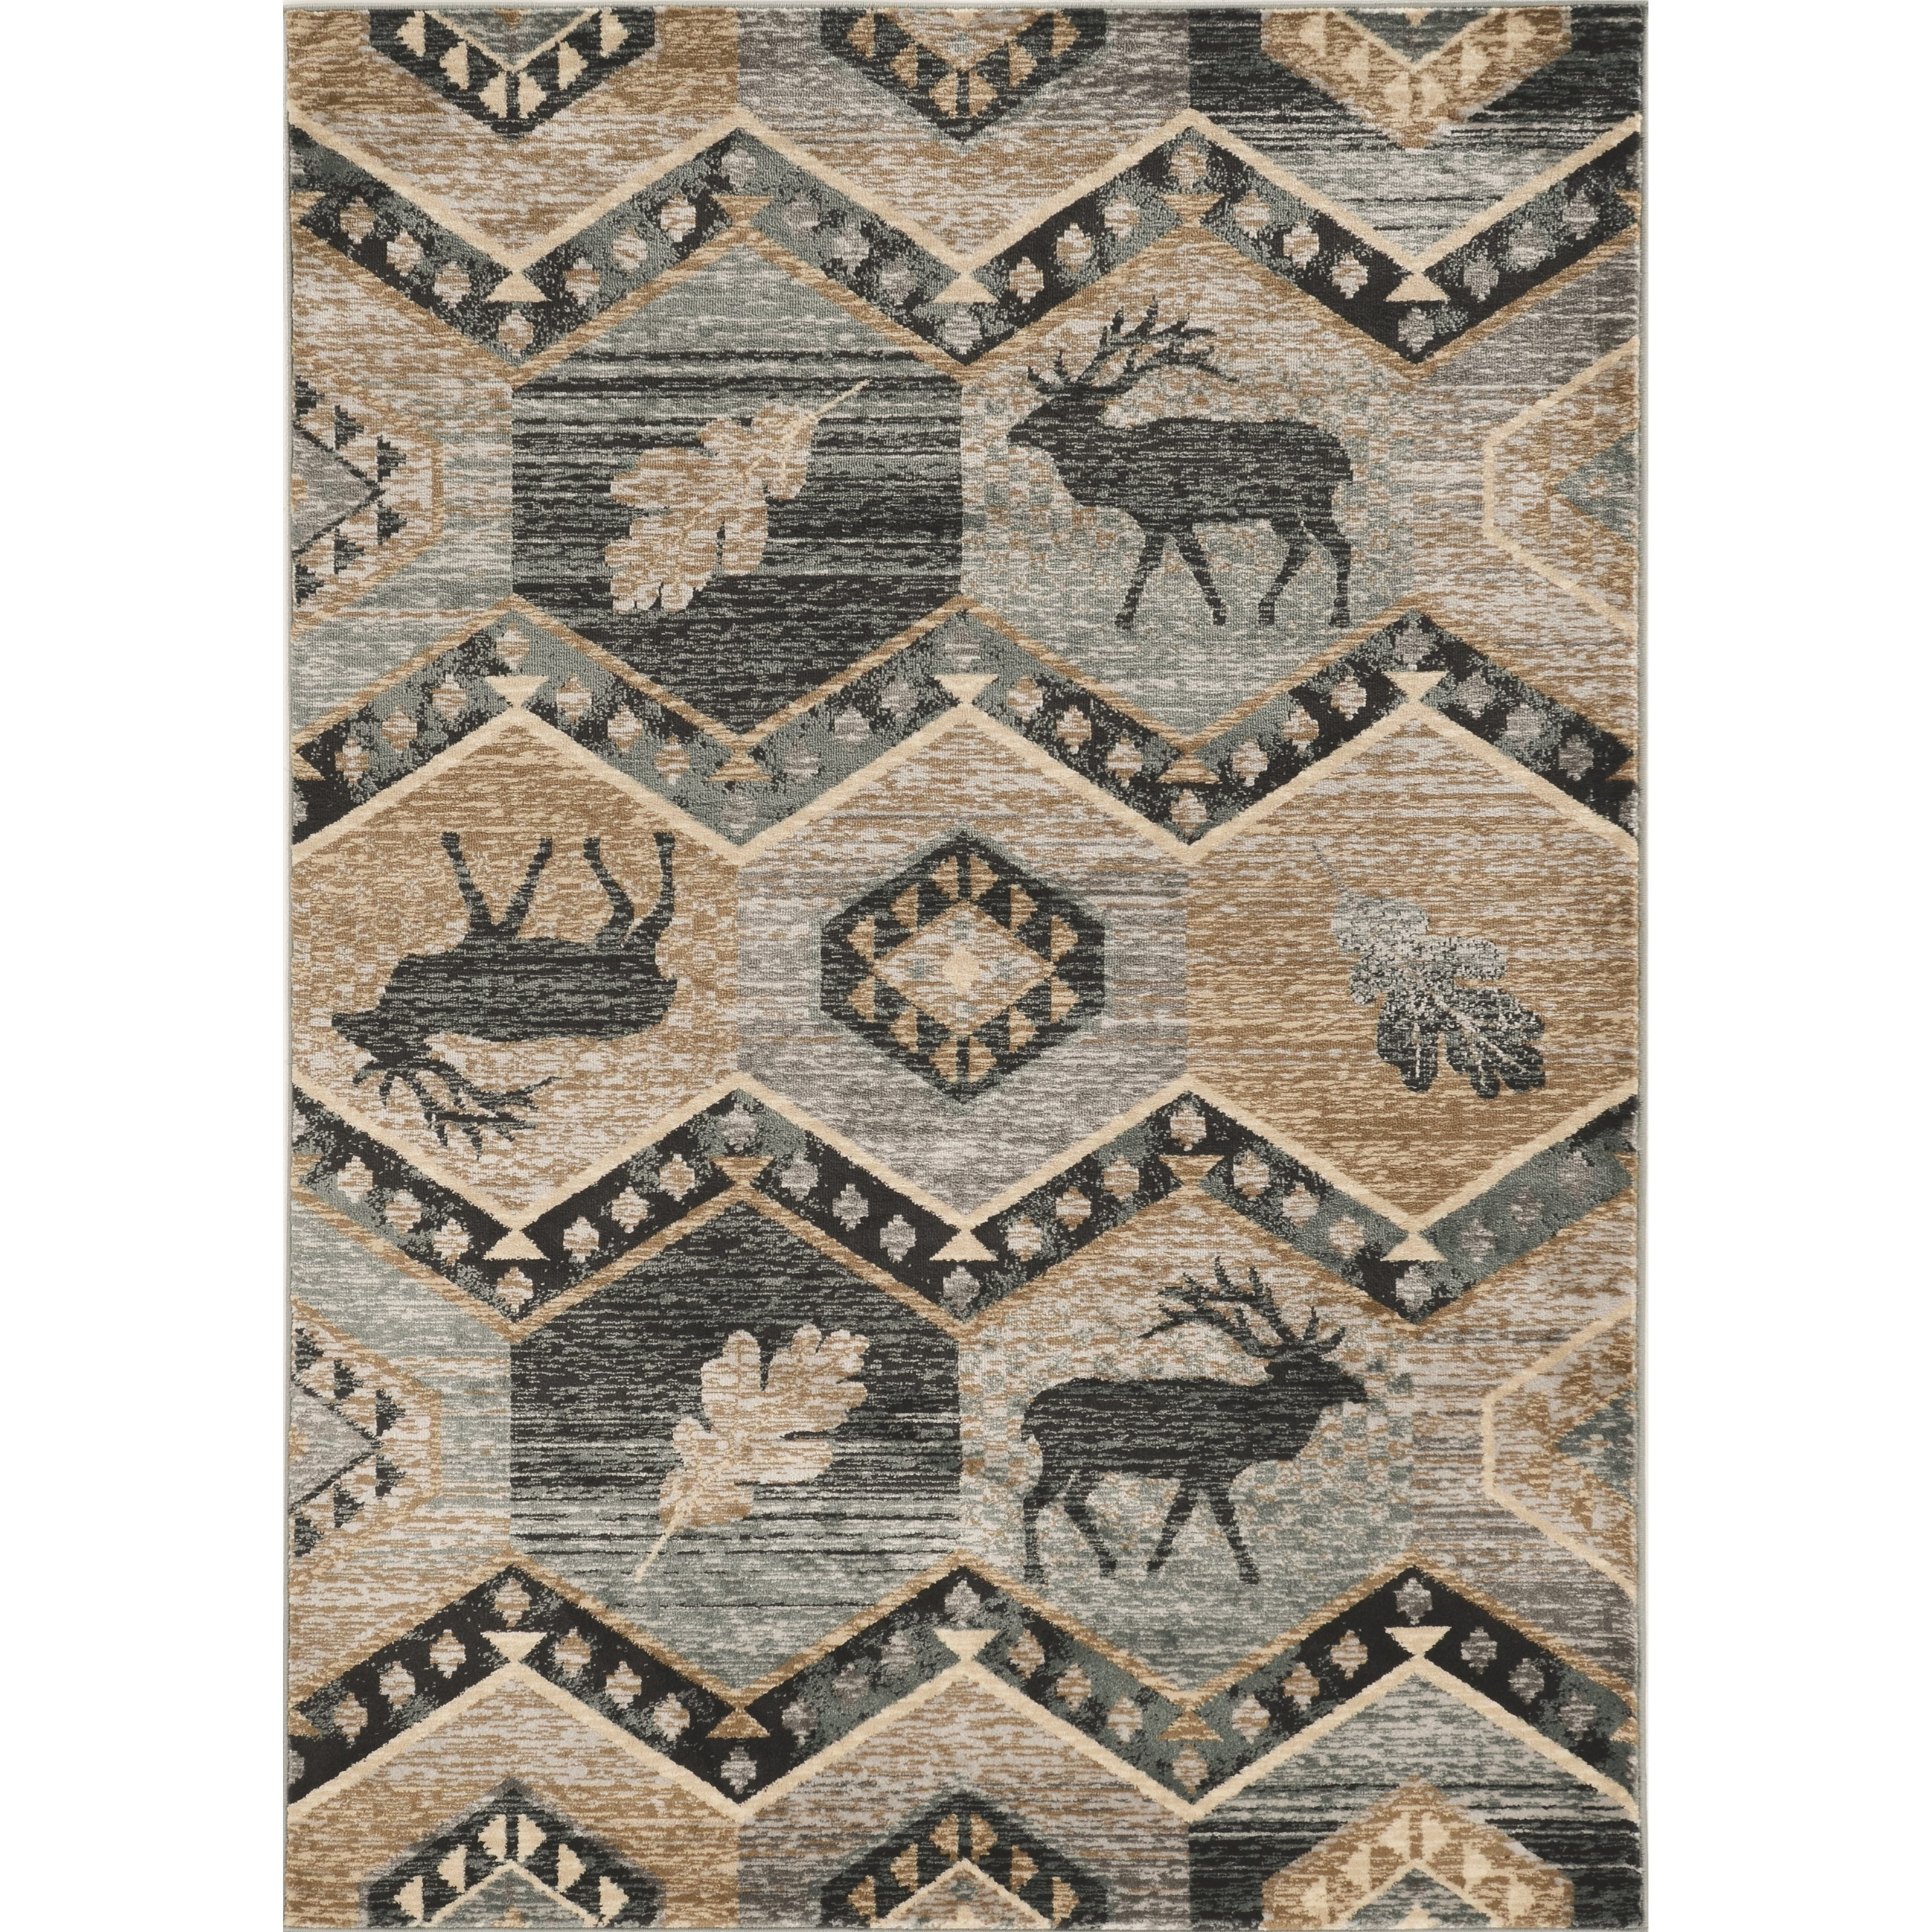 "Chester 5'3"" x 7'7"" Seafoam Woodlands Rug by Kas at Walker's Furniture"